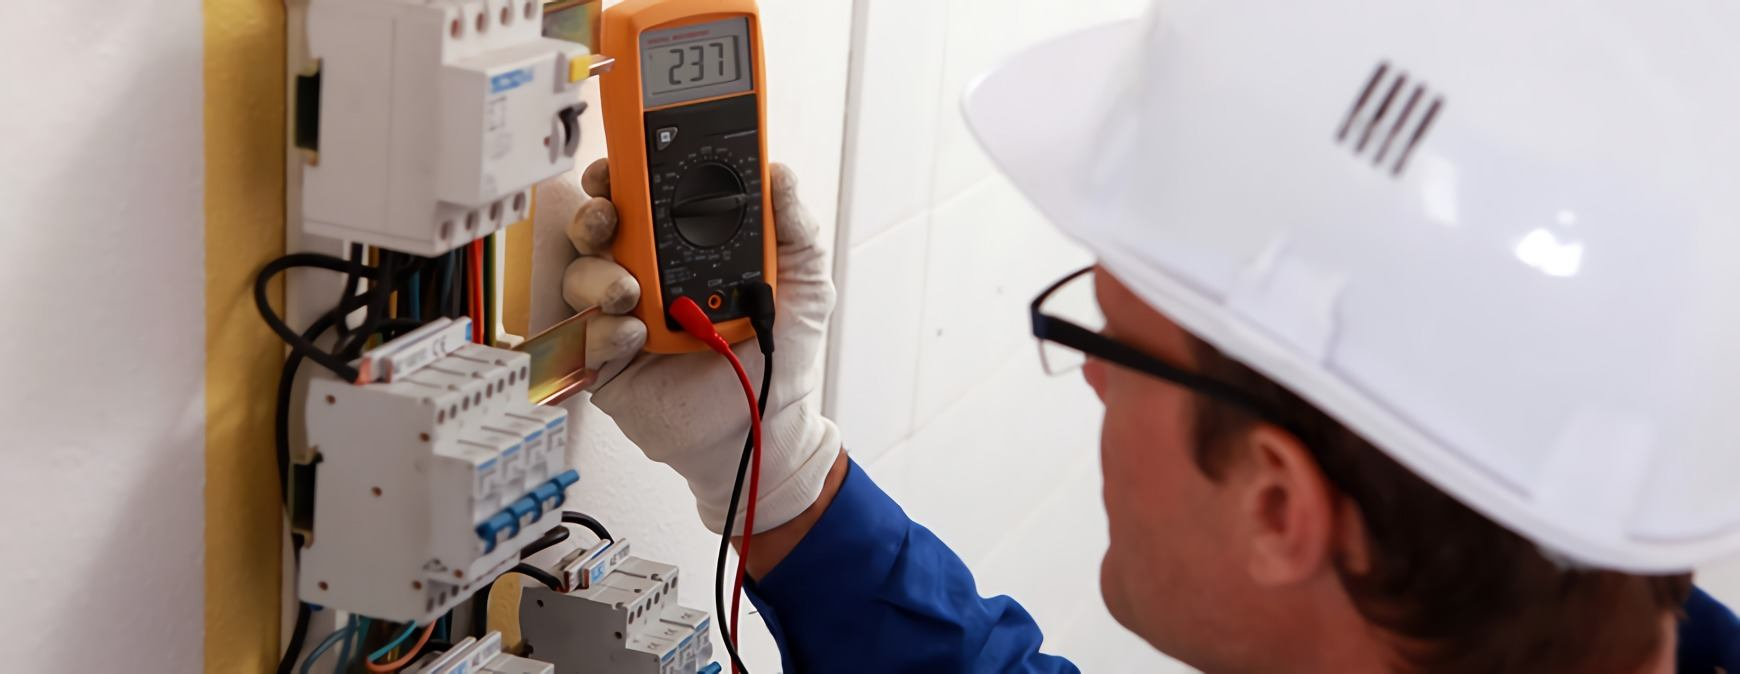 electrician using safety equipment